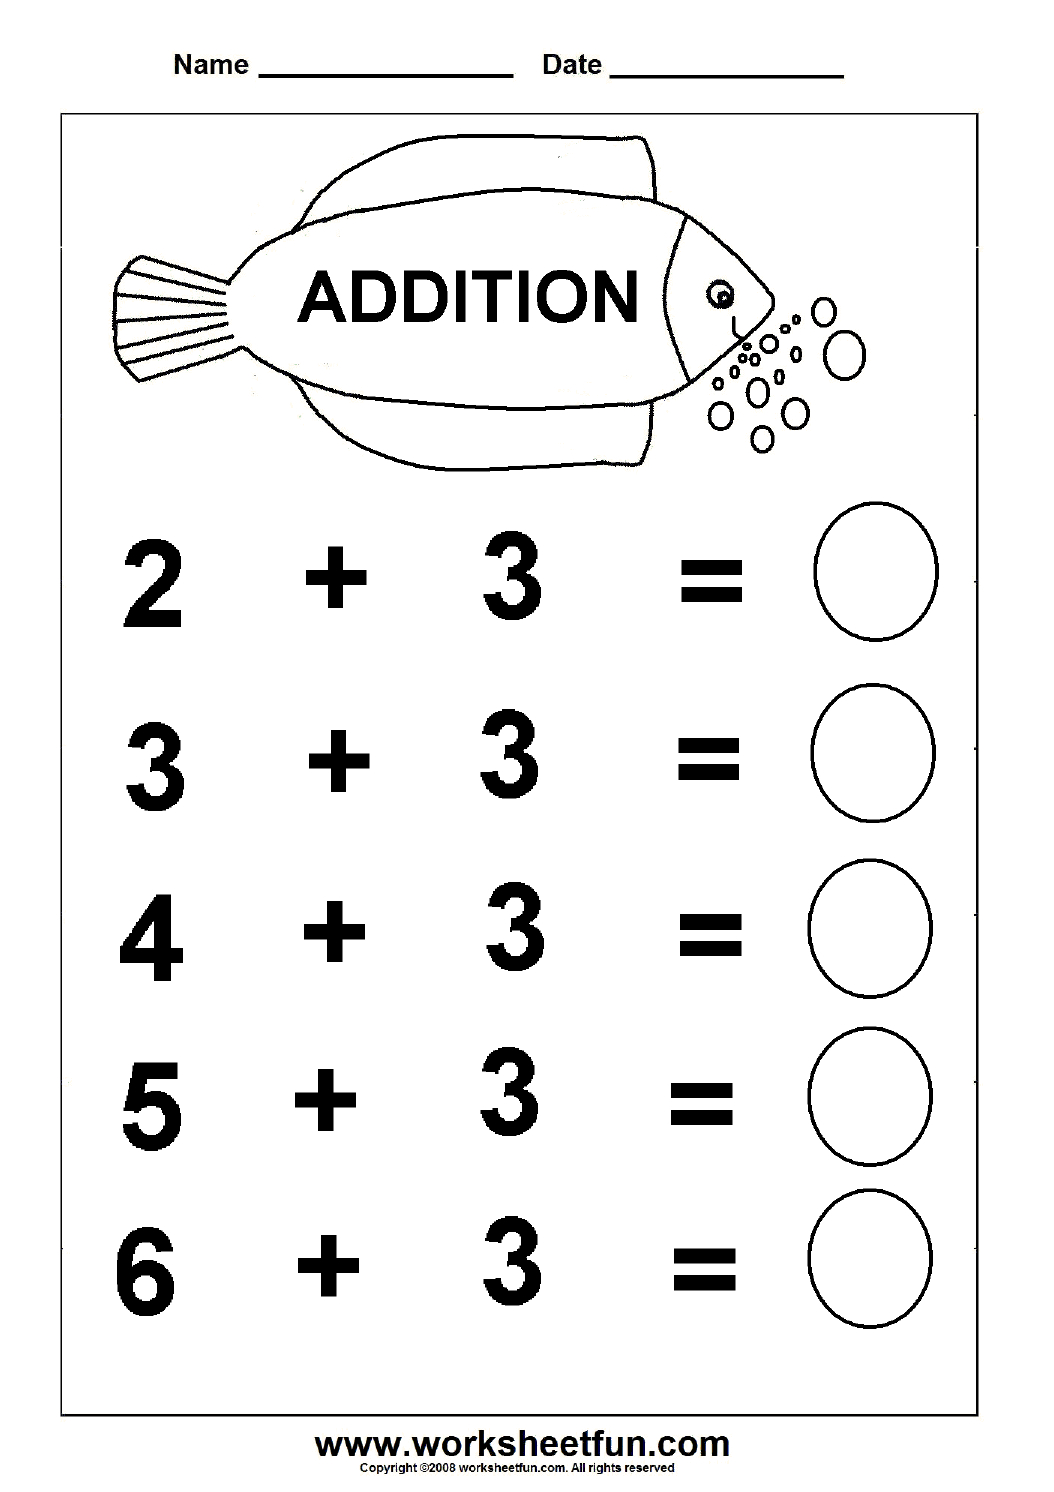 Beginner Addition – 6 Kindergarten Addition Worksheets / Free | Printable Math Addition Worksheets For Kindergarten